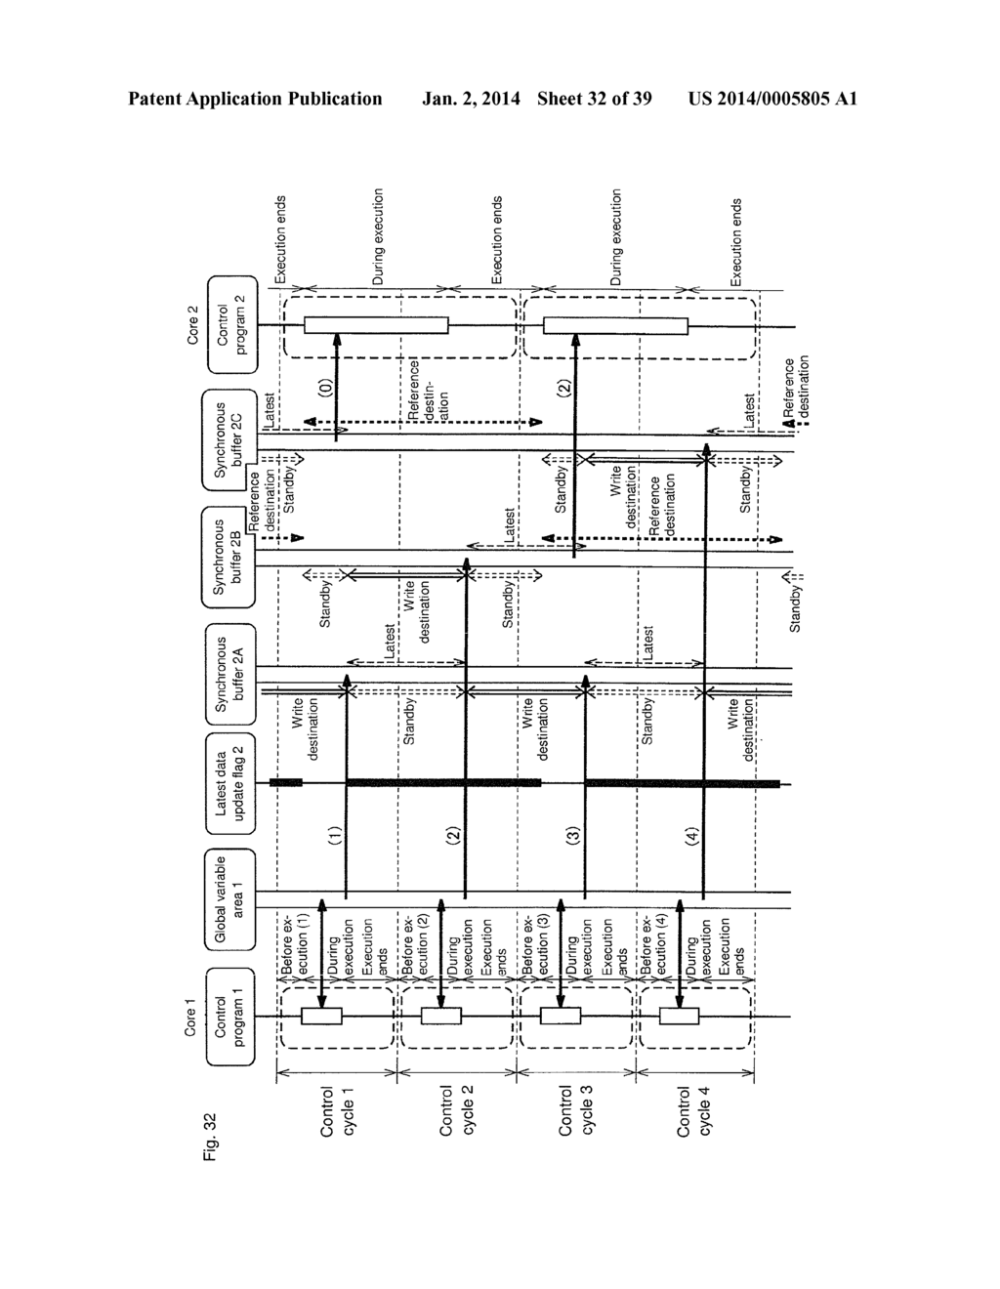 medium resolution of cpu of plc system program for plc and recording medium storing system program for plc diagram schematic and image 33